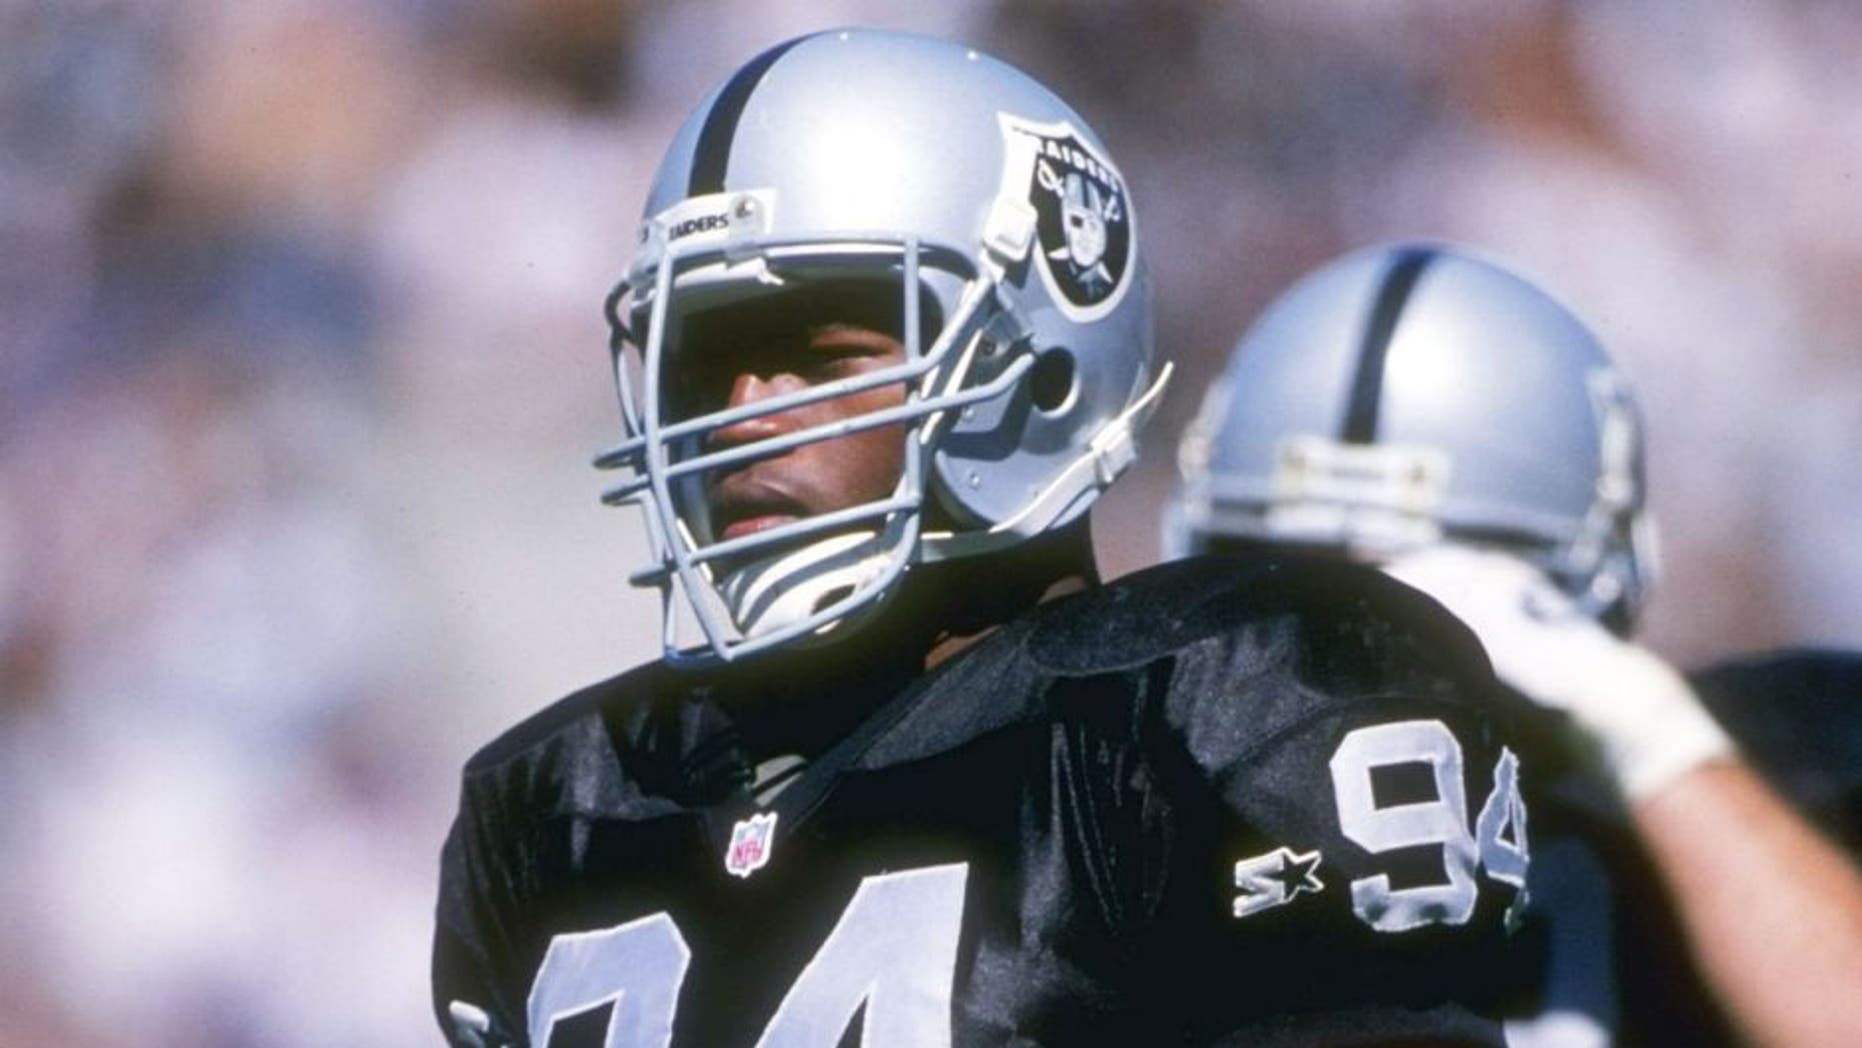 3 Sep 1995: Defensive lineman Anthony Smith of the Oakland Raiders looks on during a game against the San Diego Chargers at the Oakland-Alameda County Coliseum in Oakland, California. The Raiders won the game, 17-7. Mandatory Credit: Mike Powell /Allsp